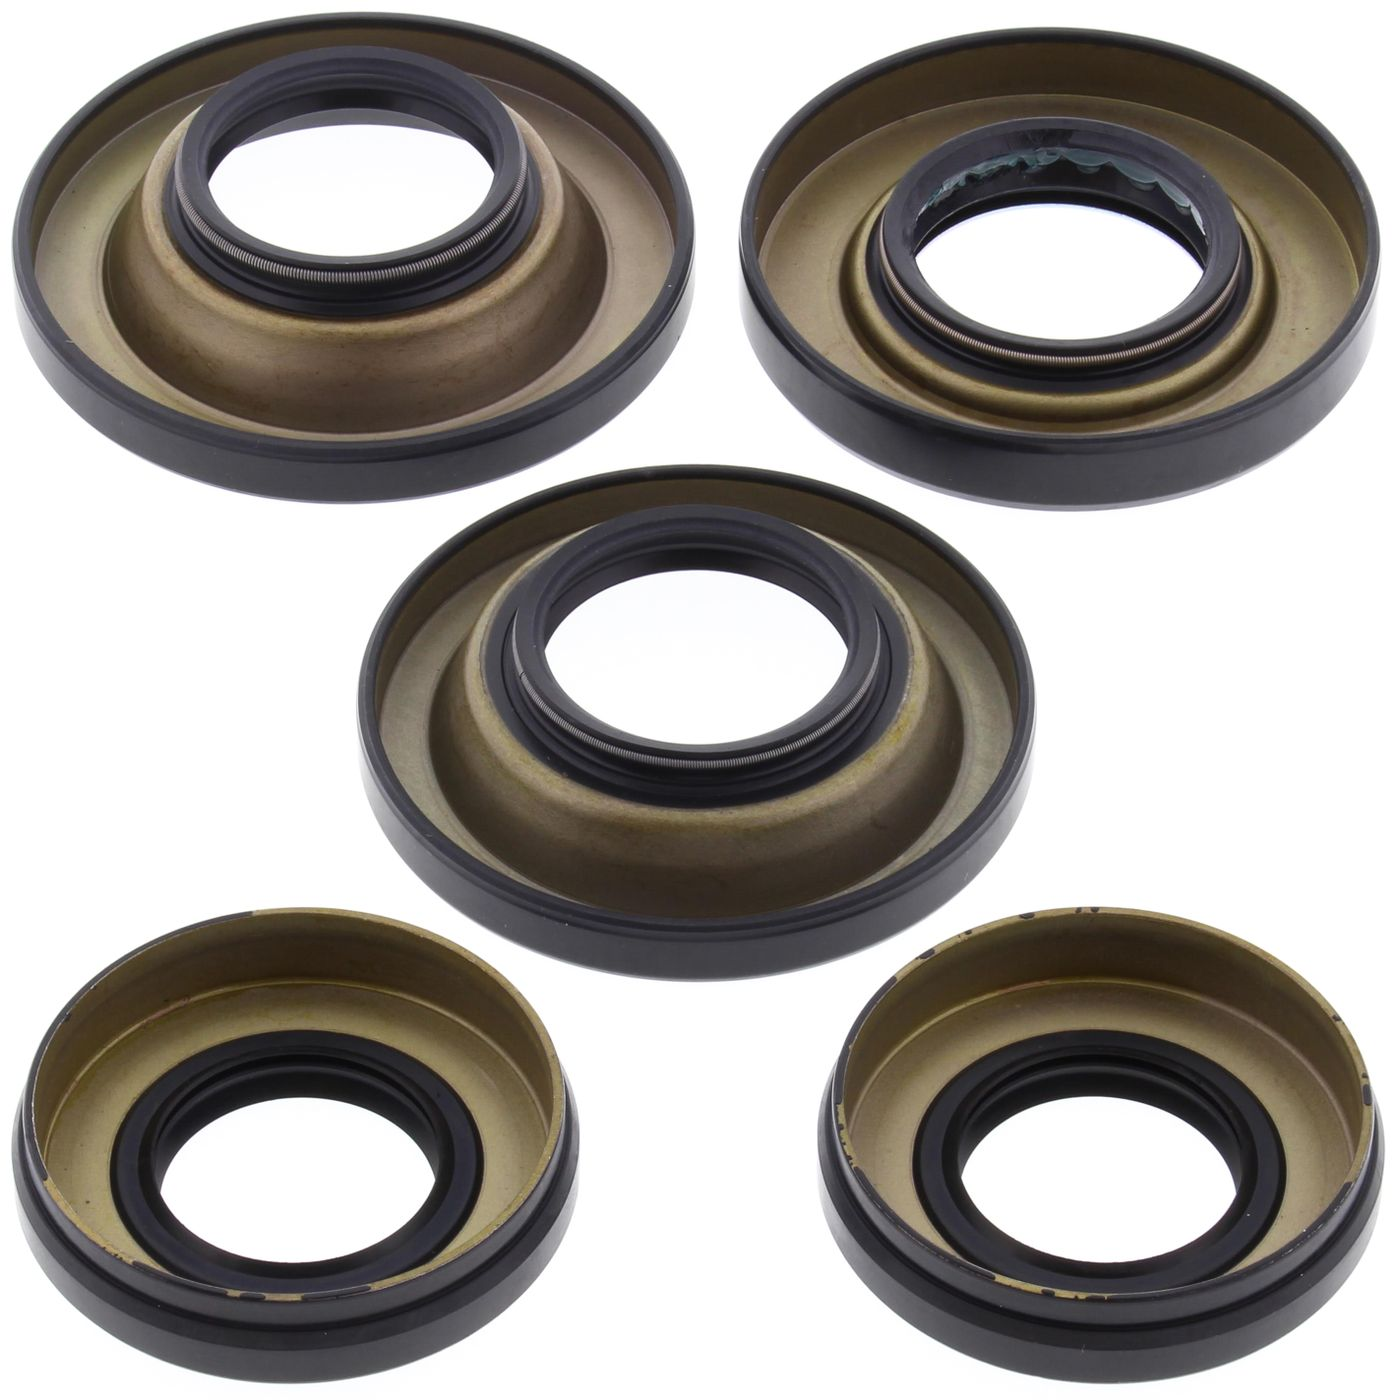 Wrp Diff Seal Kits - WRP252047-5 image